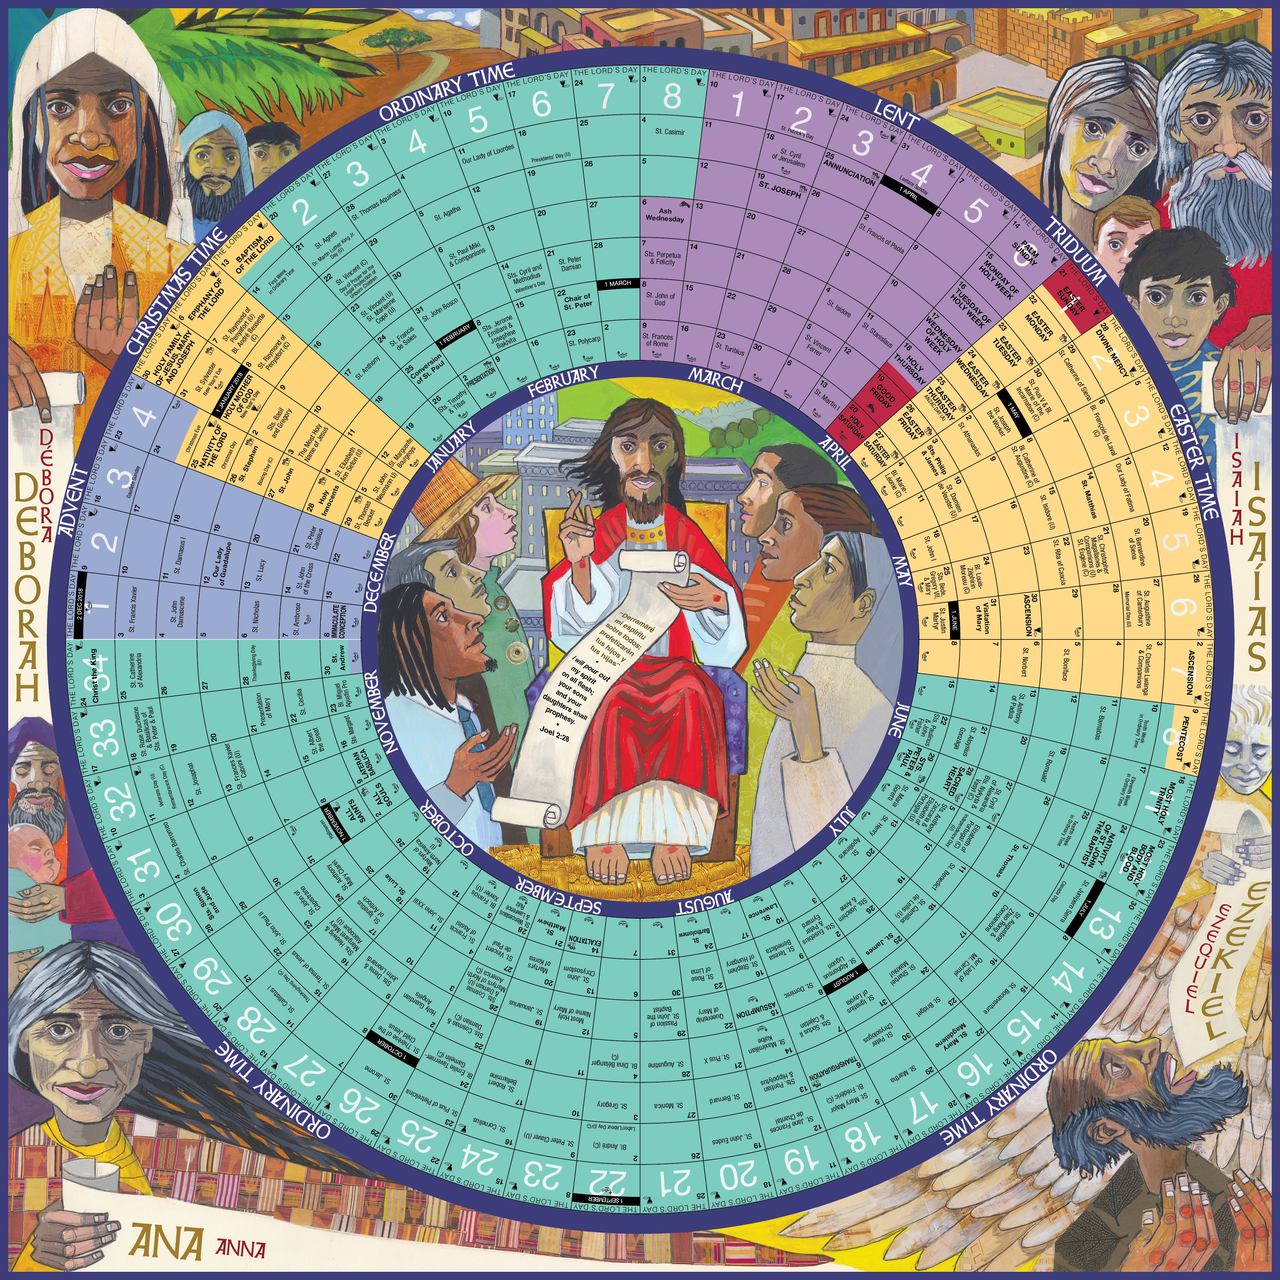 2019 year of grace liturgical calendar poster 24 by 24 inch sheet 9781616714062 yg19lp